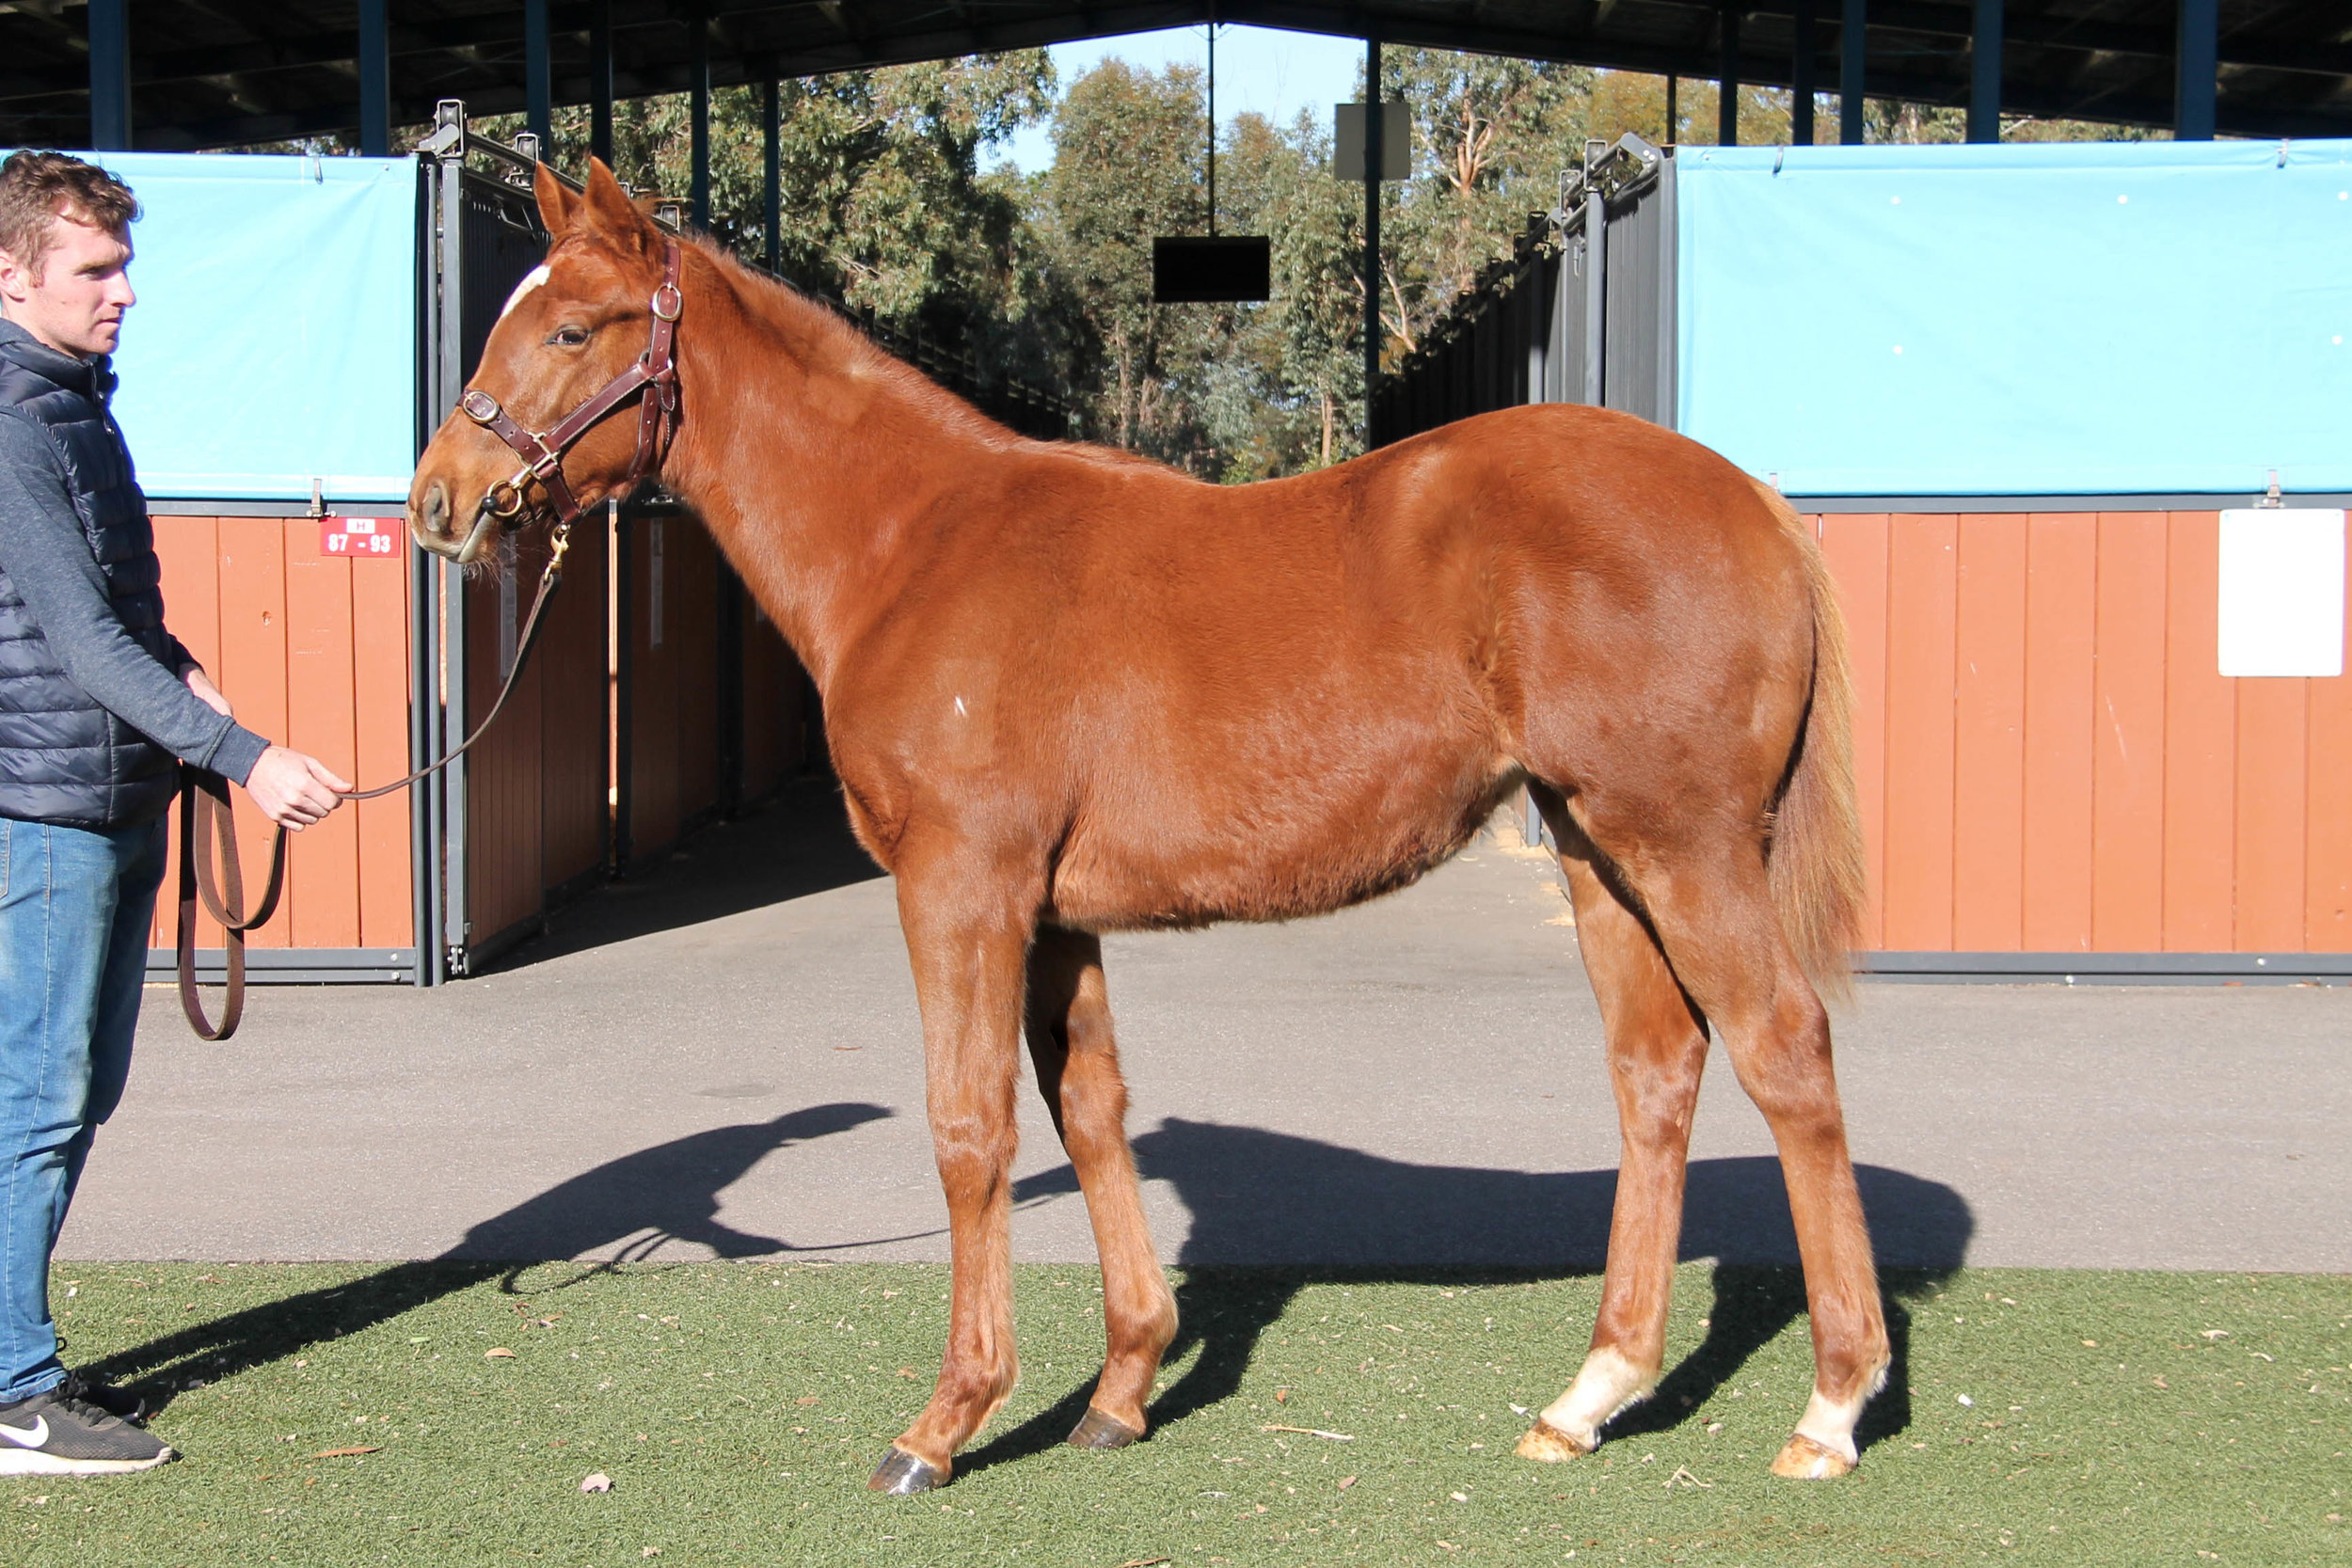 Lot 146 - Palentino x Finishing School (GB) 2018 Filly - Sold for $2,000 to Stonehouse Thoroughbreds VIC